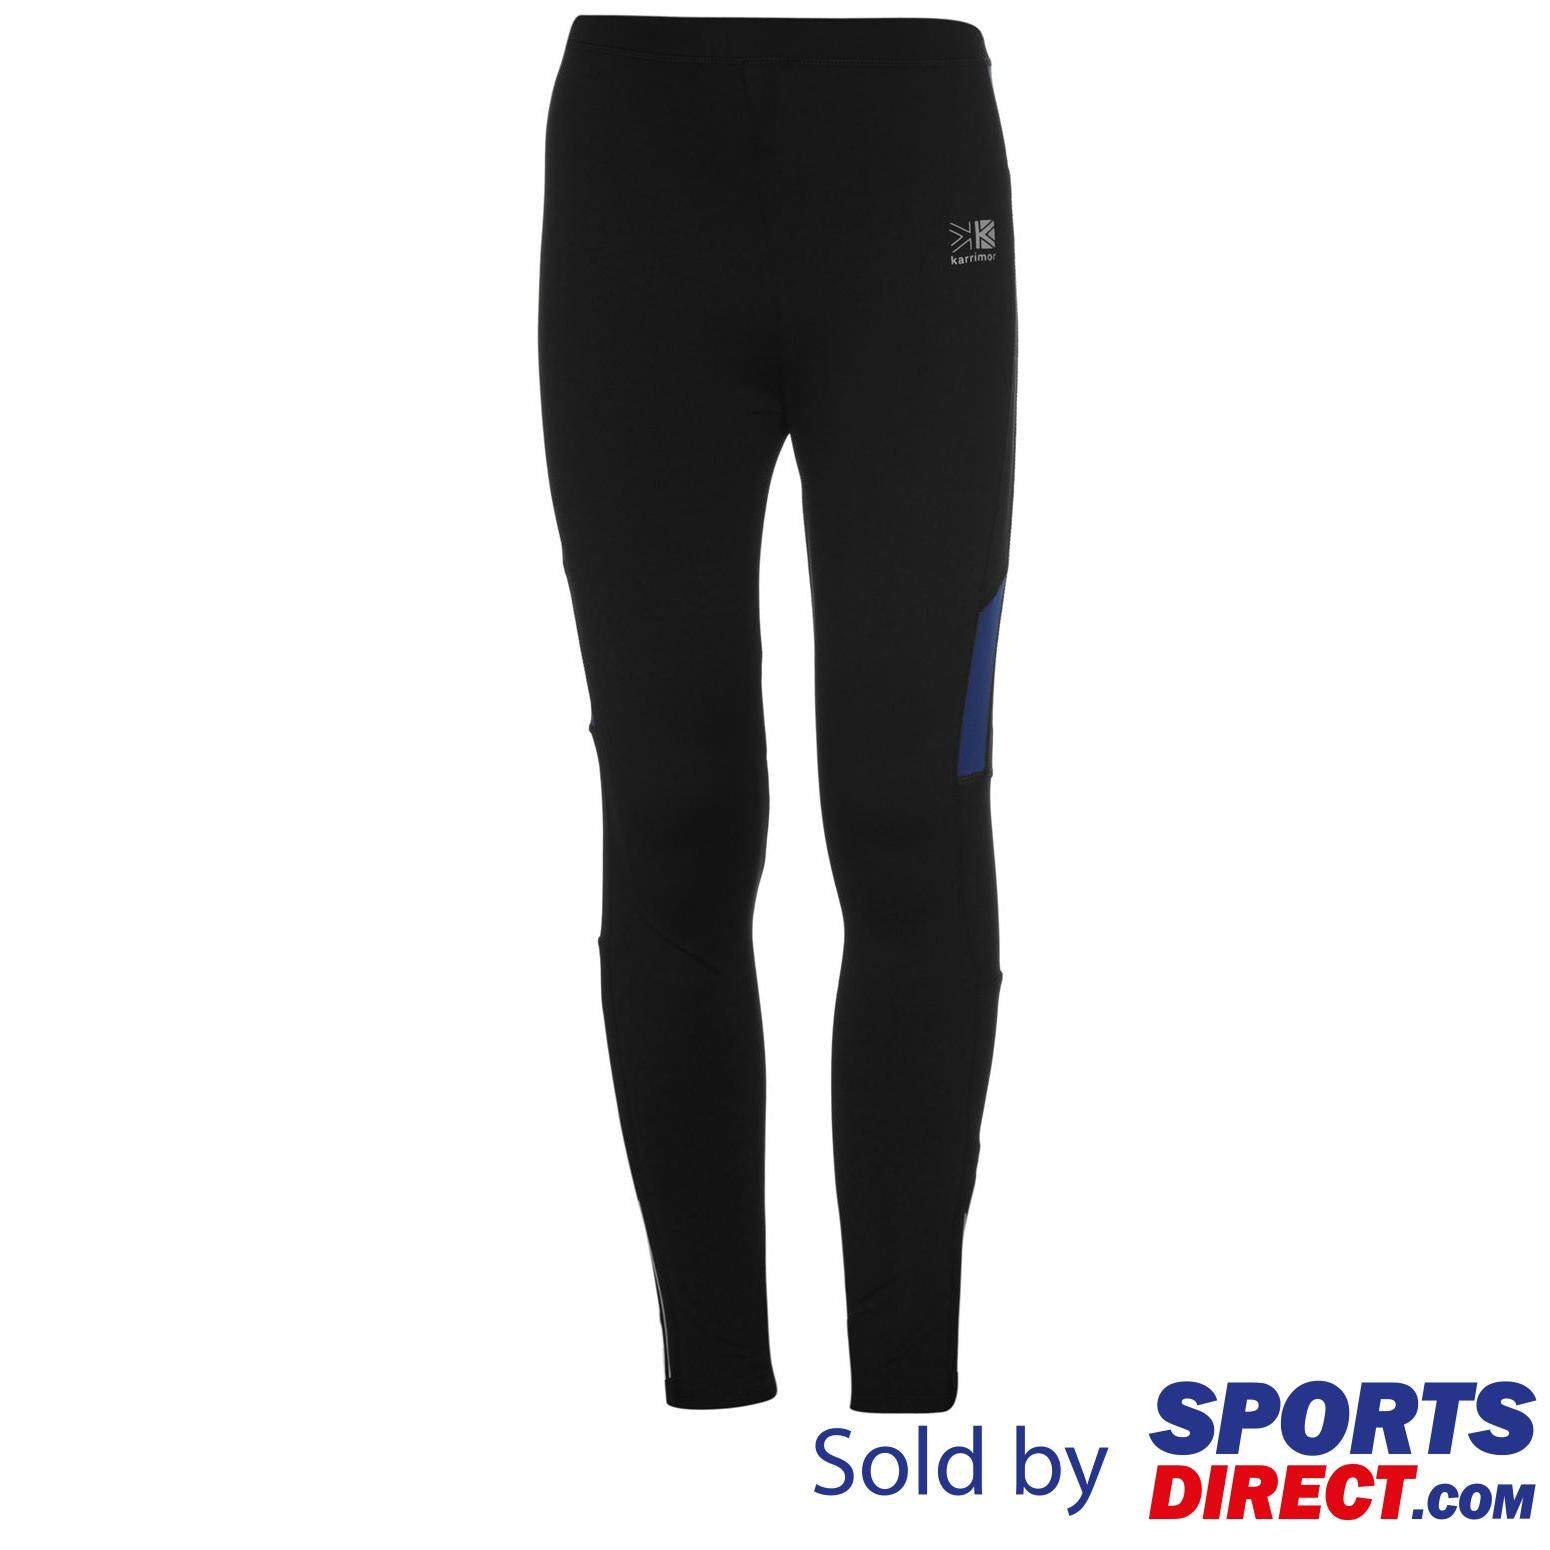 Karrimor Kids Boys Running Tights (black/blue) By Sports Direct Mst Sdn Bhd.